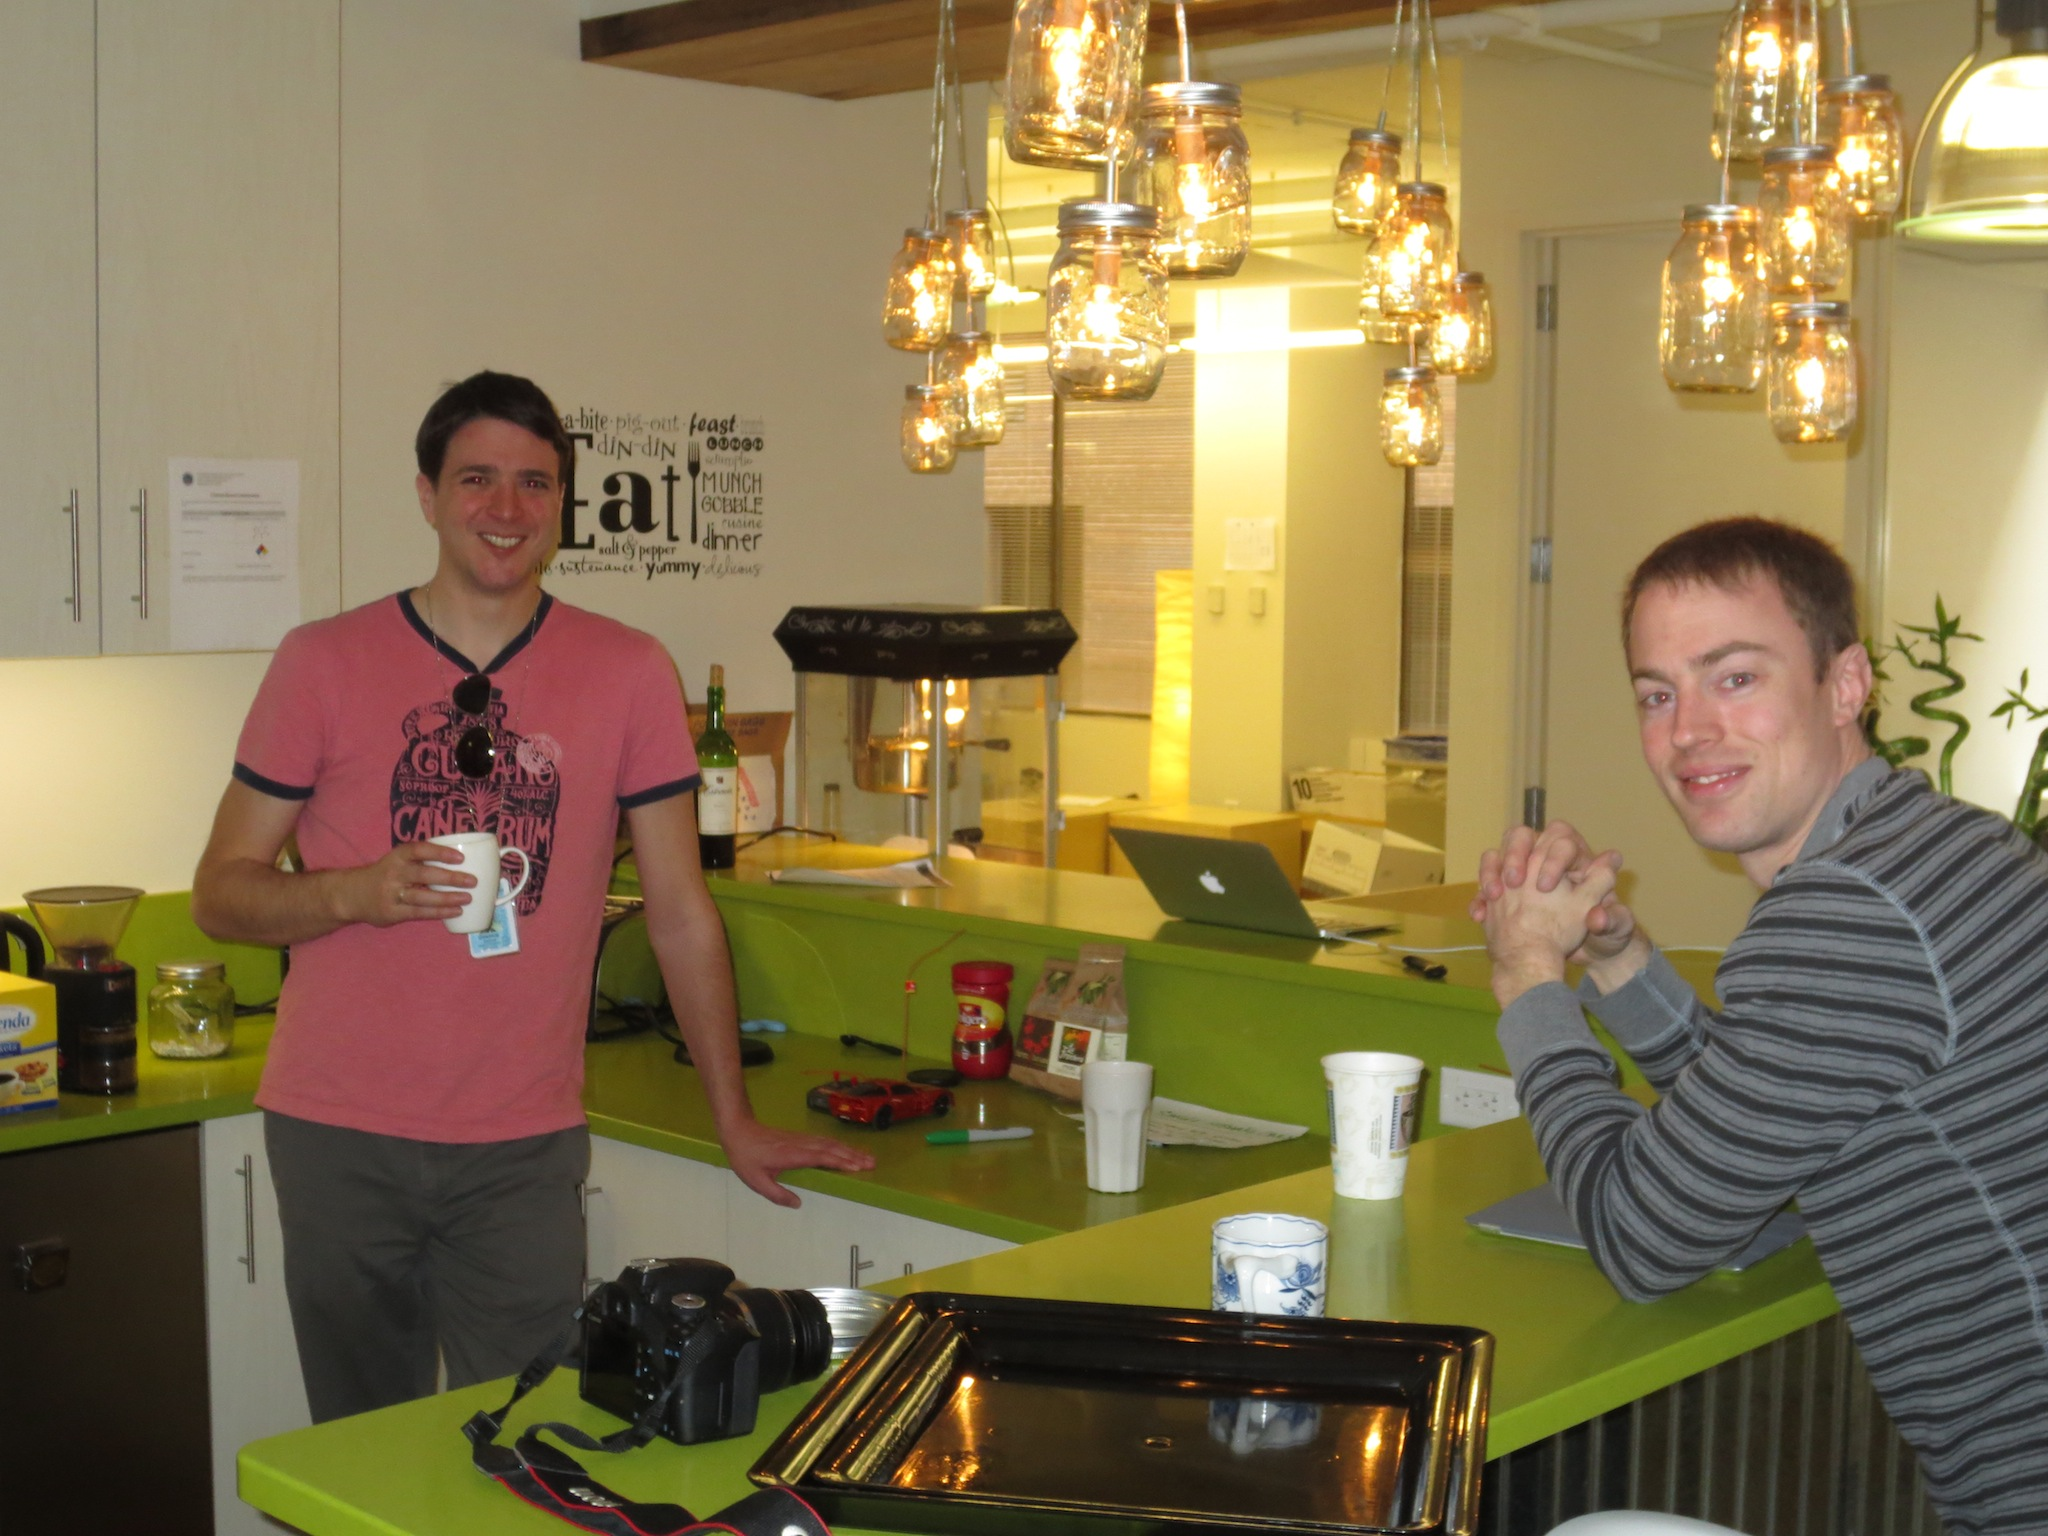 Josh and Ryan in the kitchen area of SocialCode's office